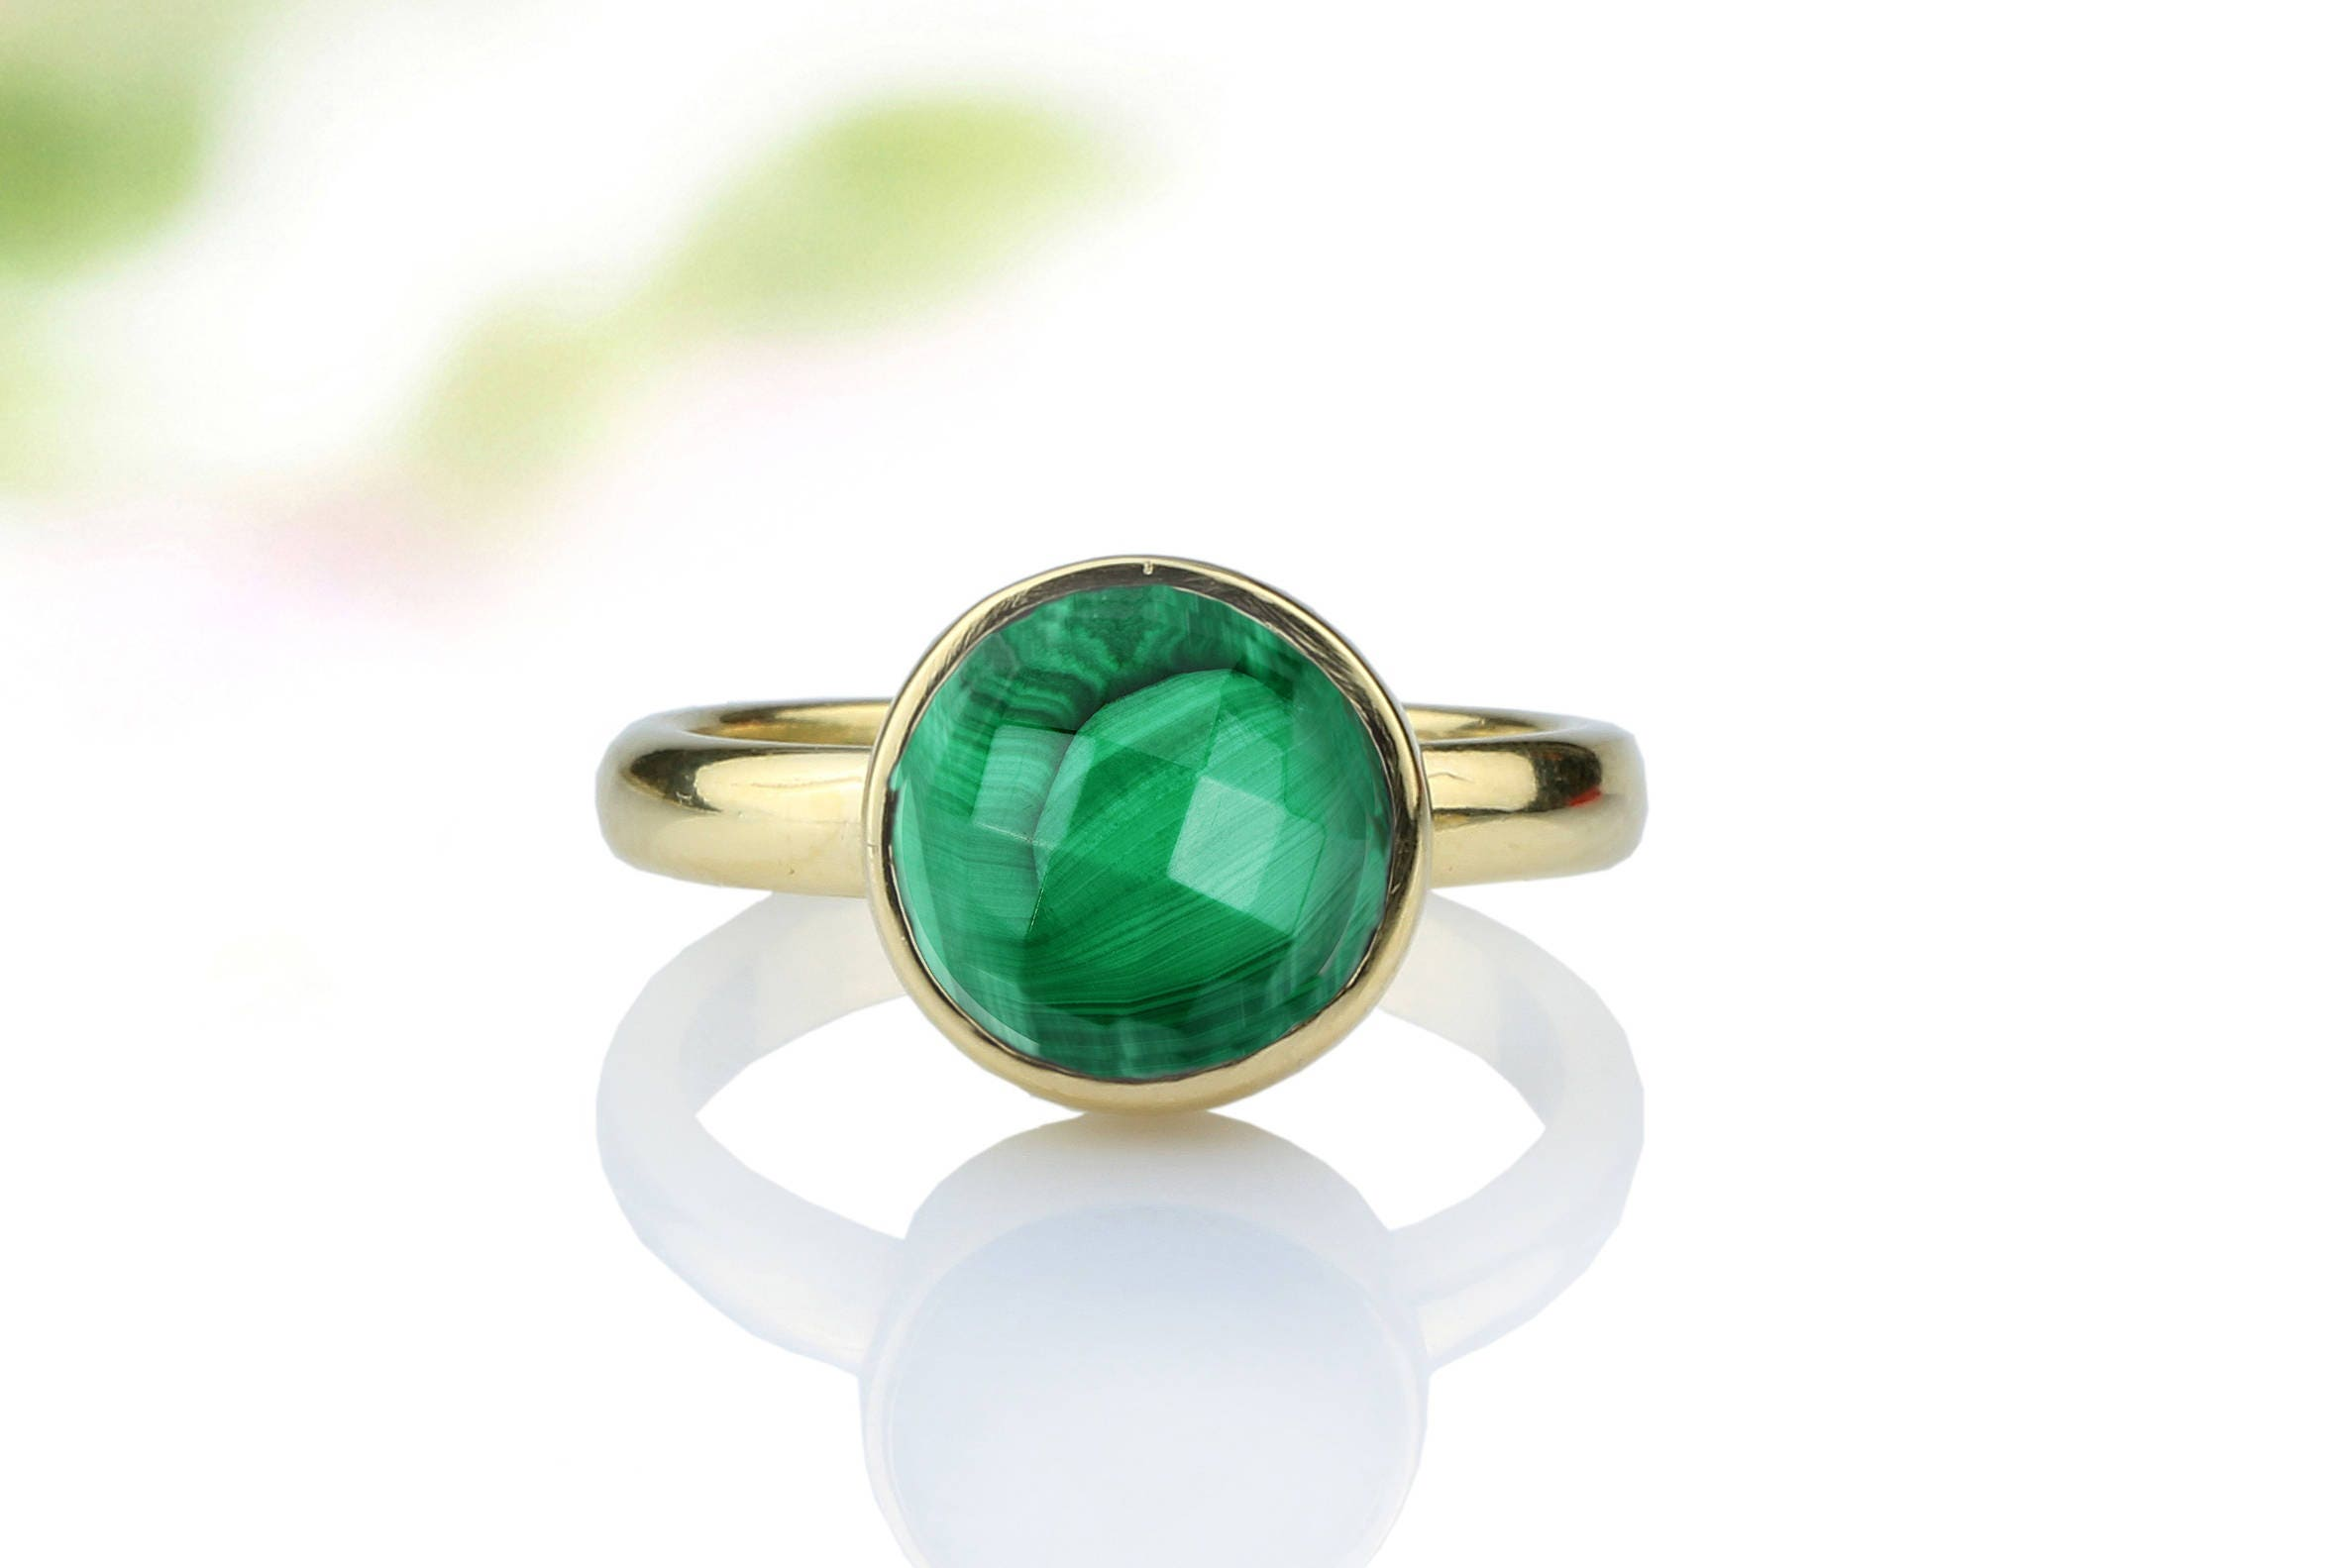 ring precieuse em upscale and gemstone djula emerald false green copie diamond v crop scale shop rings blanc product collection subsampling